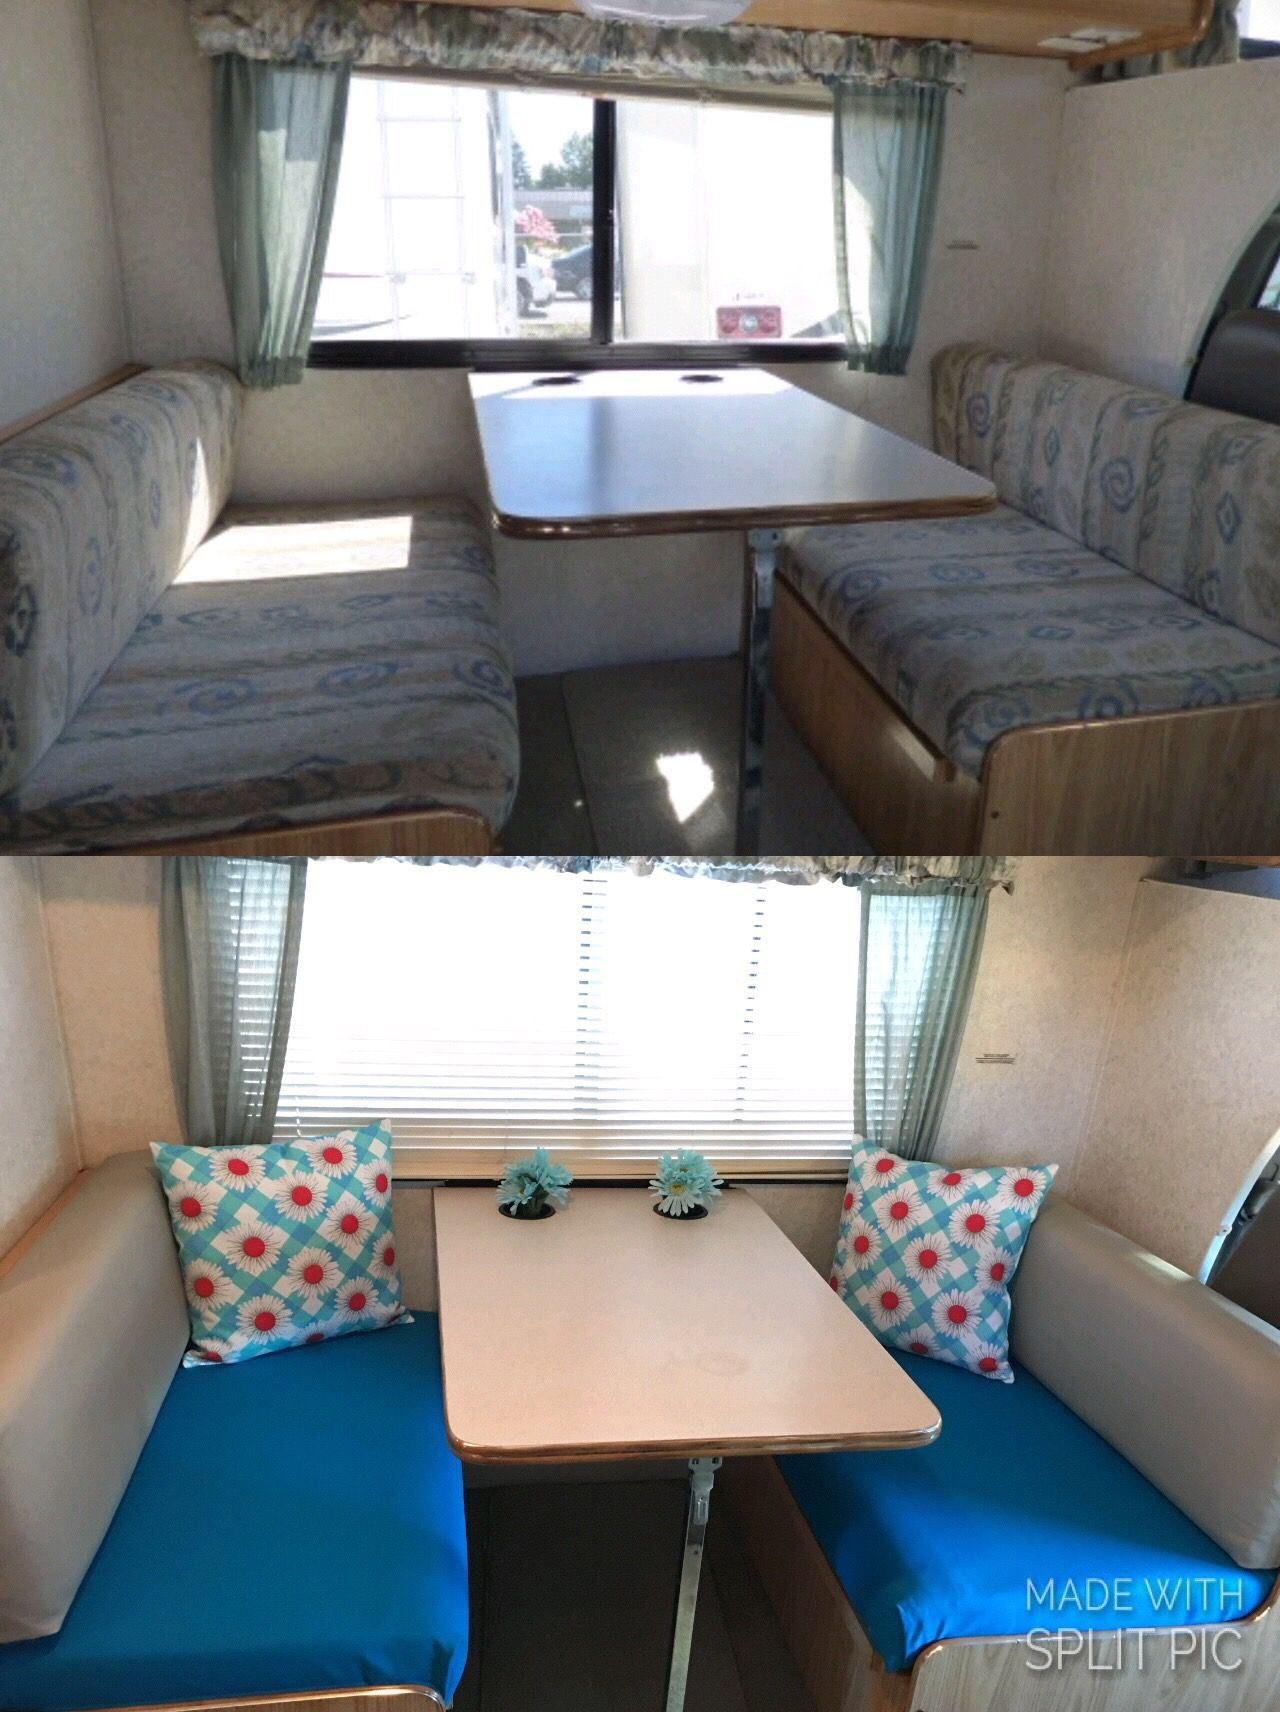 Reupholstered RV cushions. Slipped plywood under